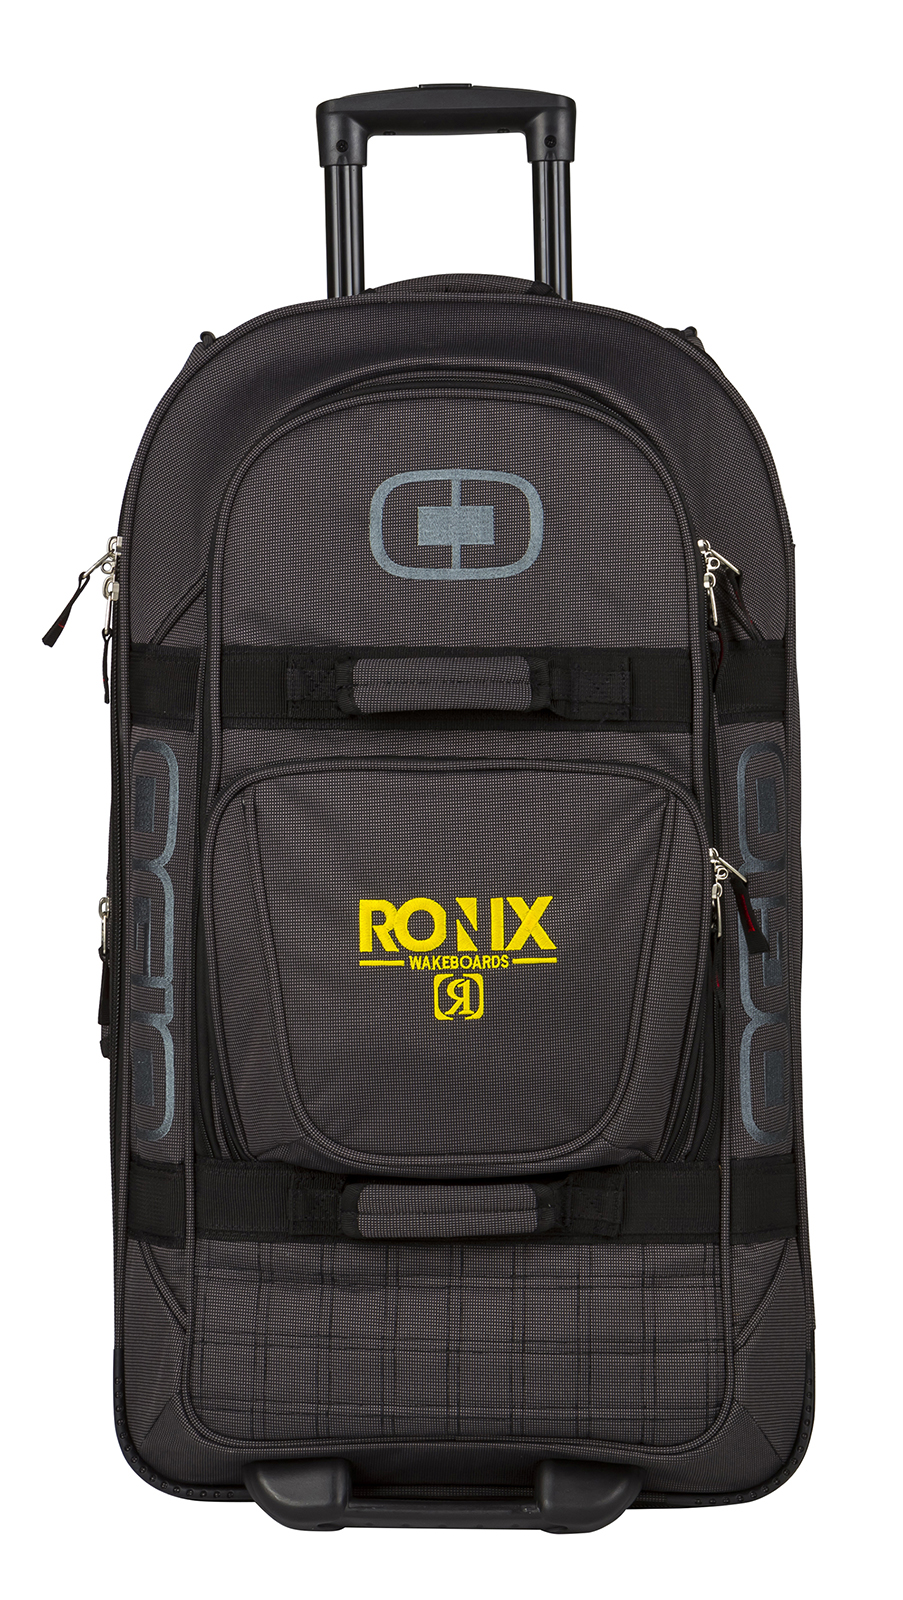 TRAVEL LUGGAGE RONIX 2017